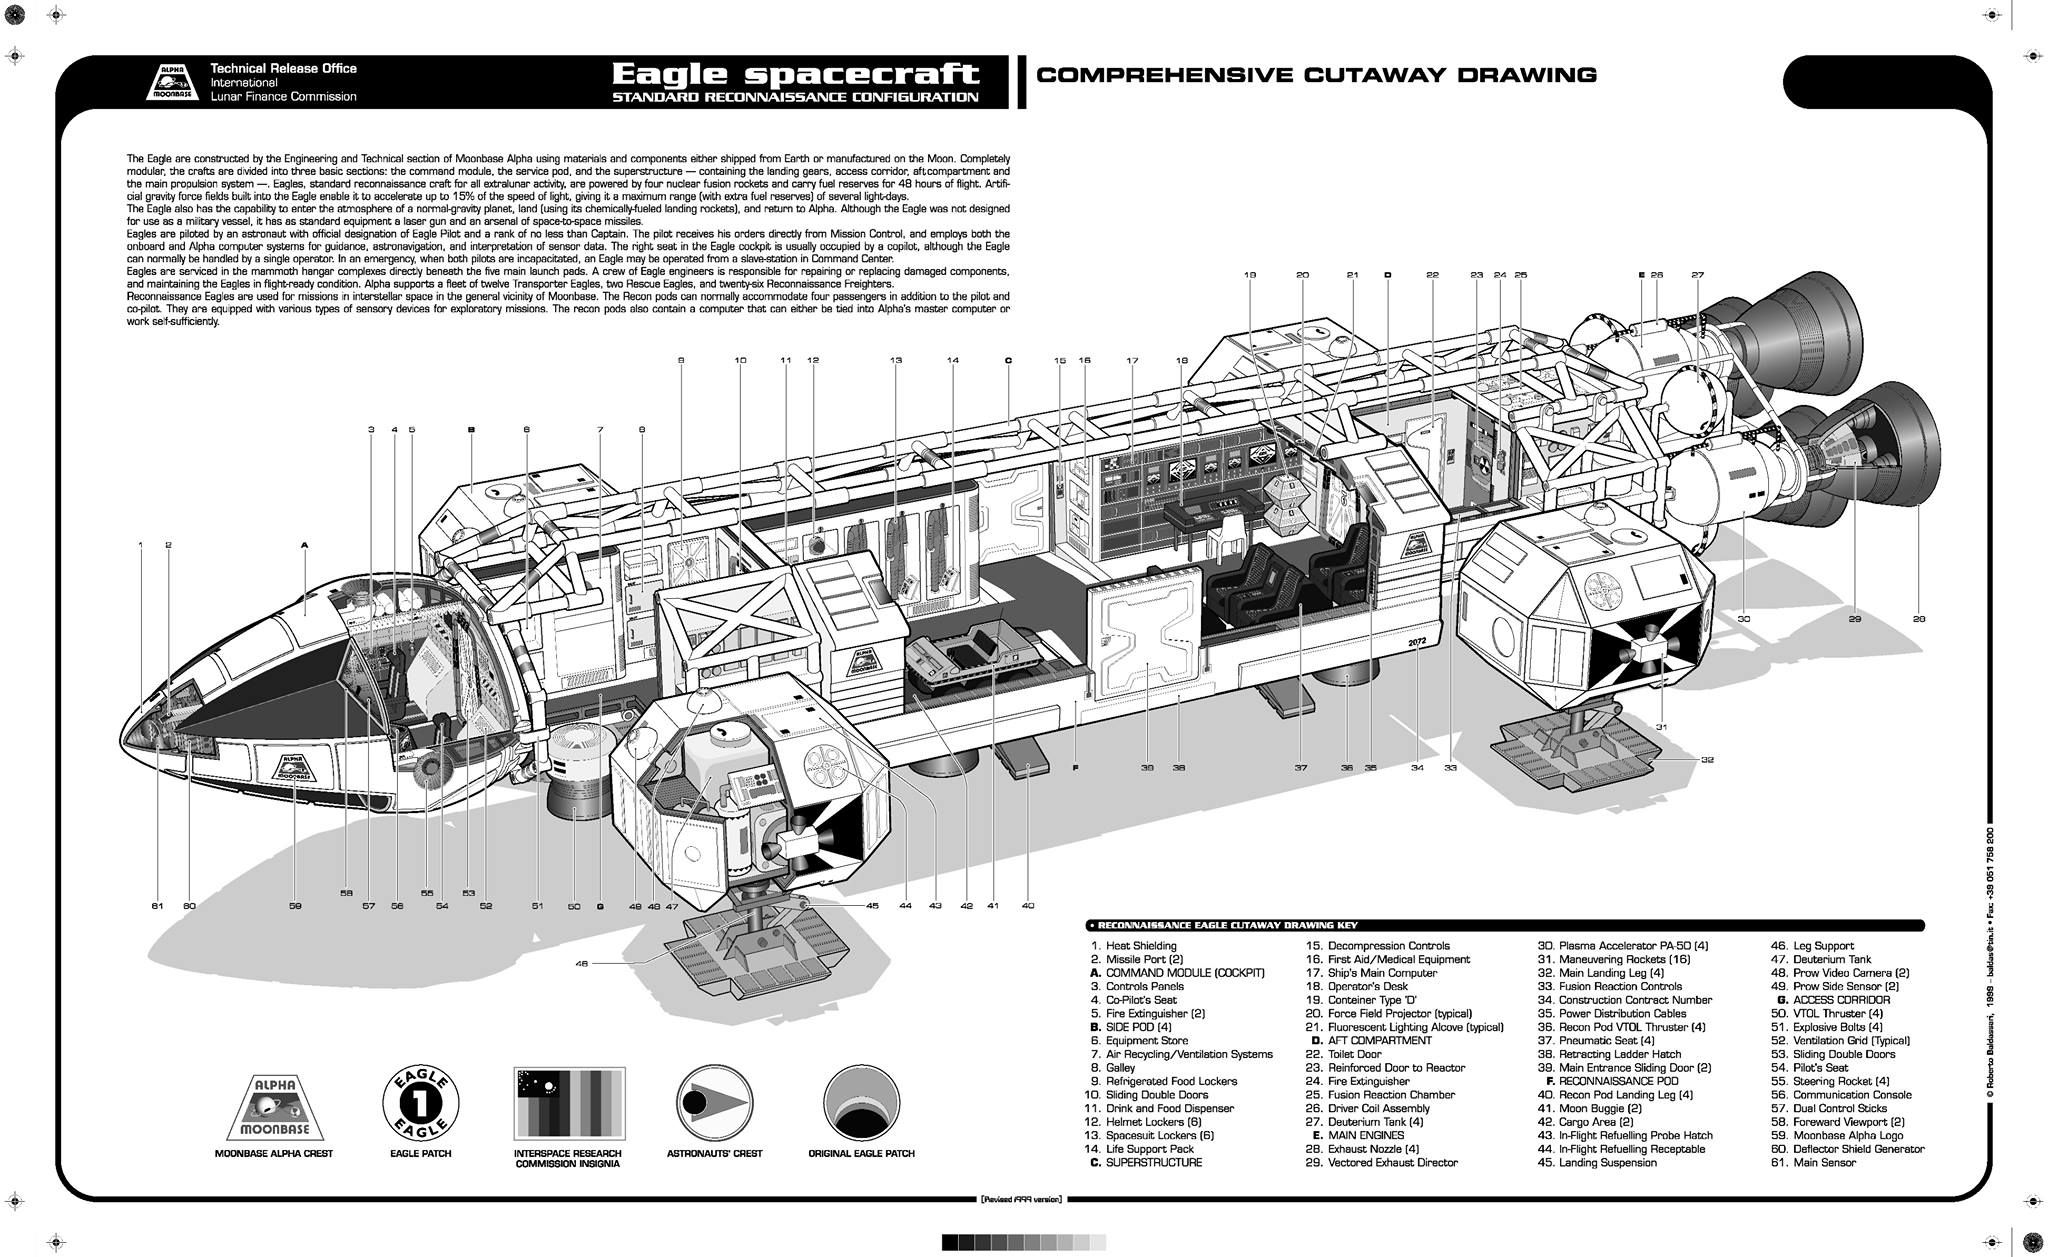 spaceship cutaway diagram meyer home plow wiring highly detailed illustration of the eagle